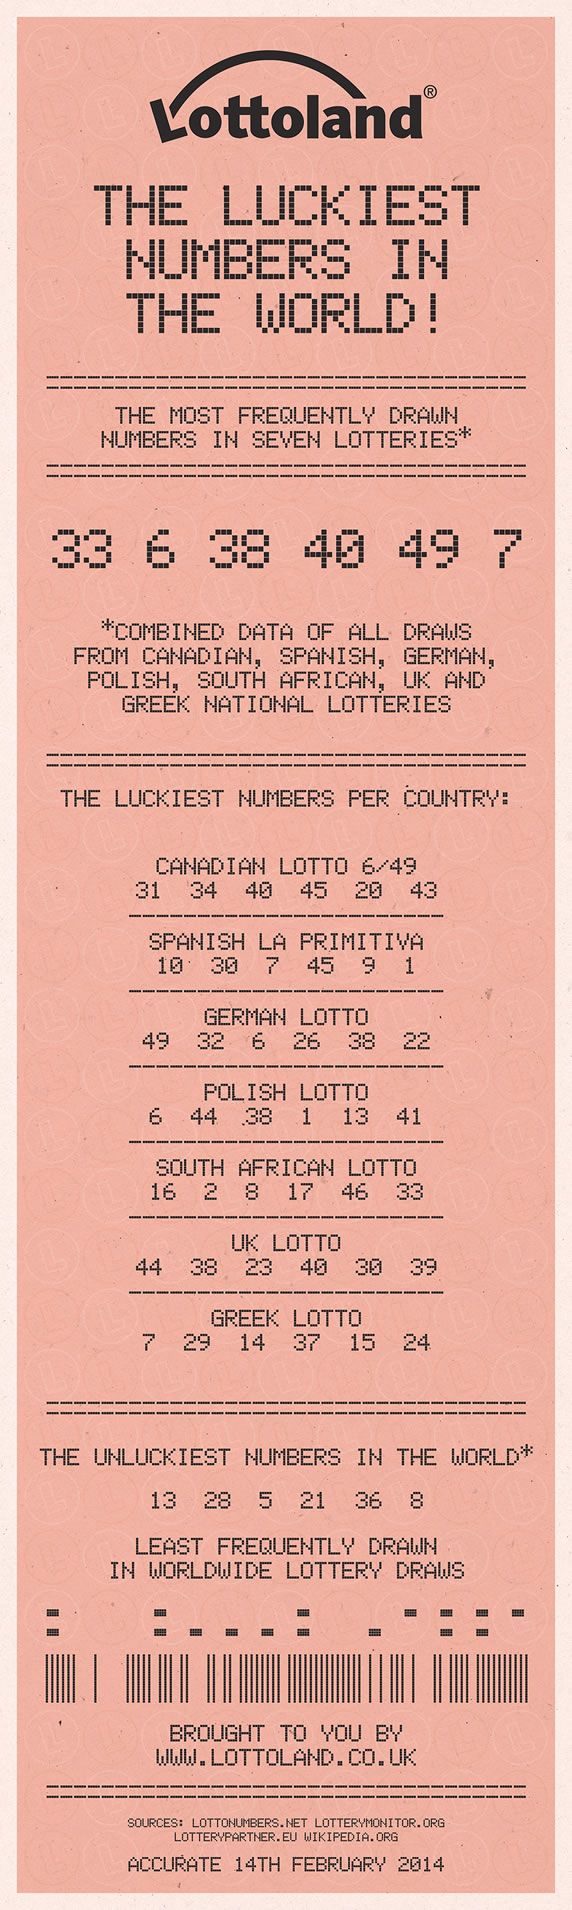 Infographic The Luckiest Numbers In The World Lottery Numbers Lottery Simple Life Hacks